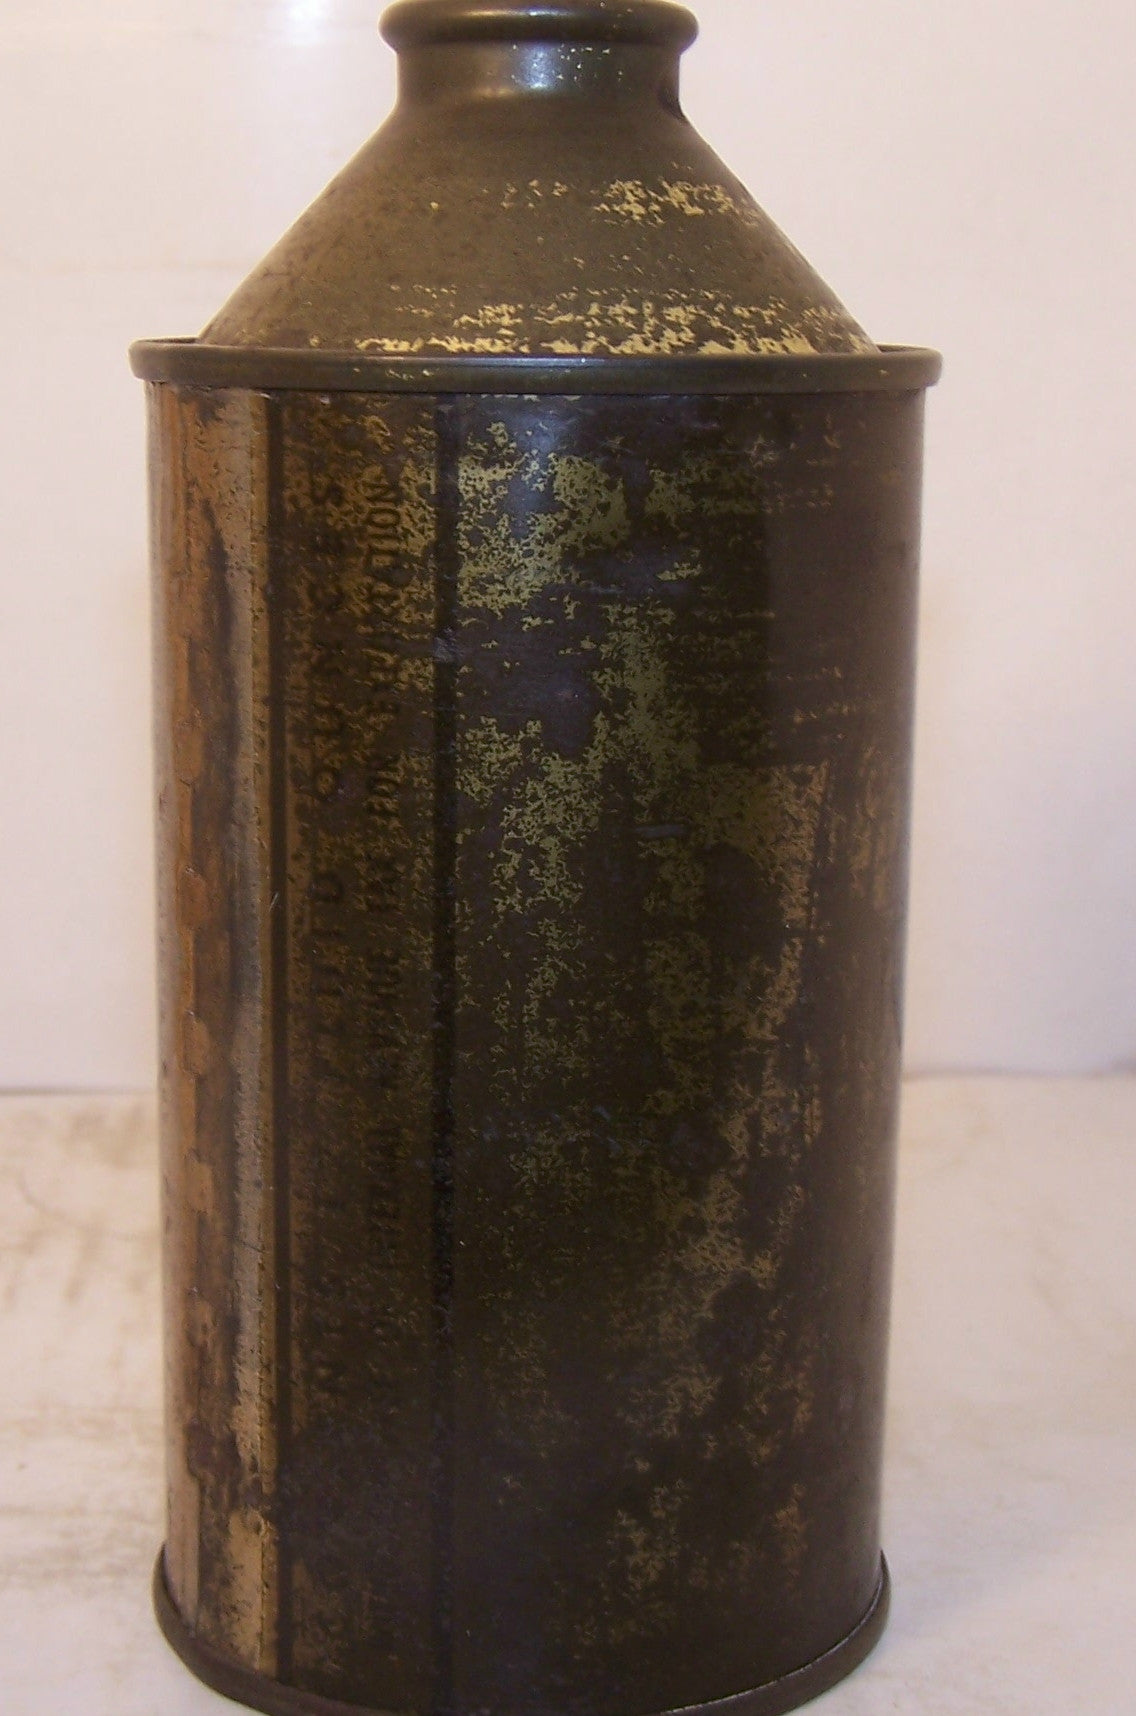 Champagne Velvet Olive Drab, USBC 157-5, Grade 2 Asking $400-sold for $275.00 trending steady